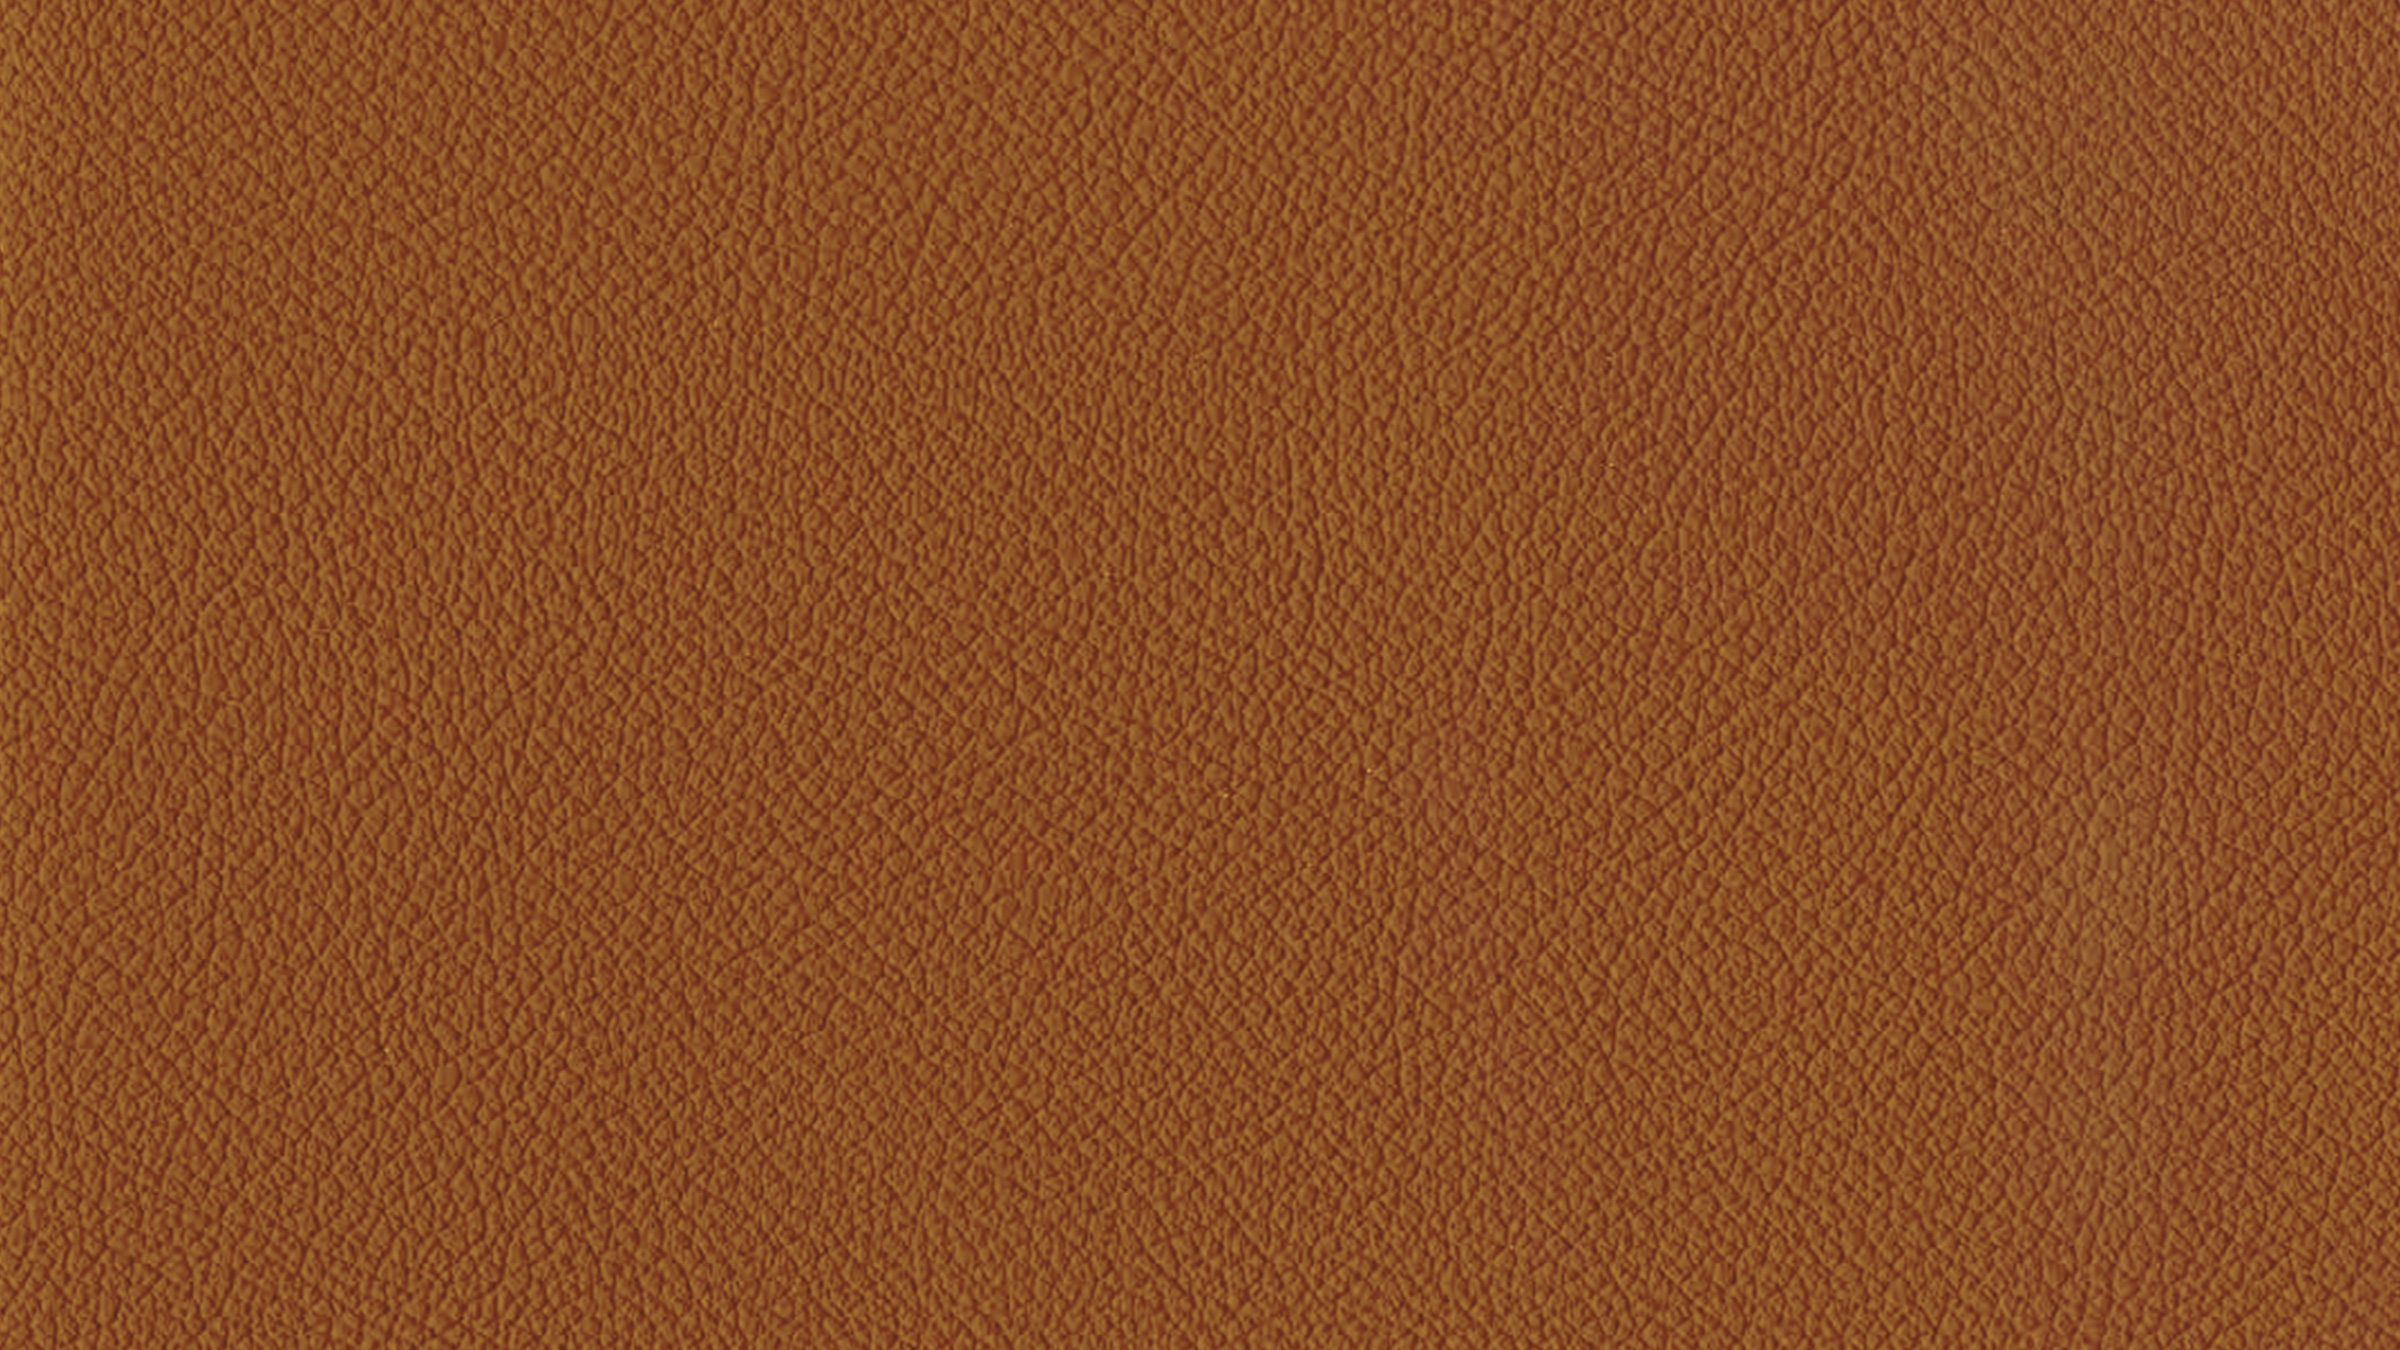 PREMIUM TAN LEATHER